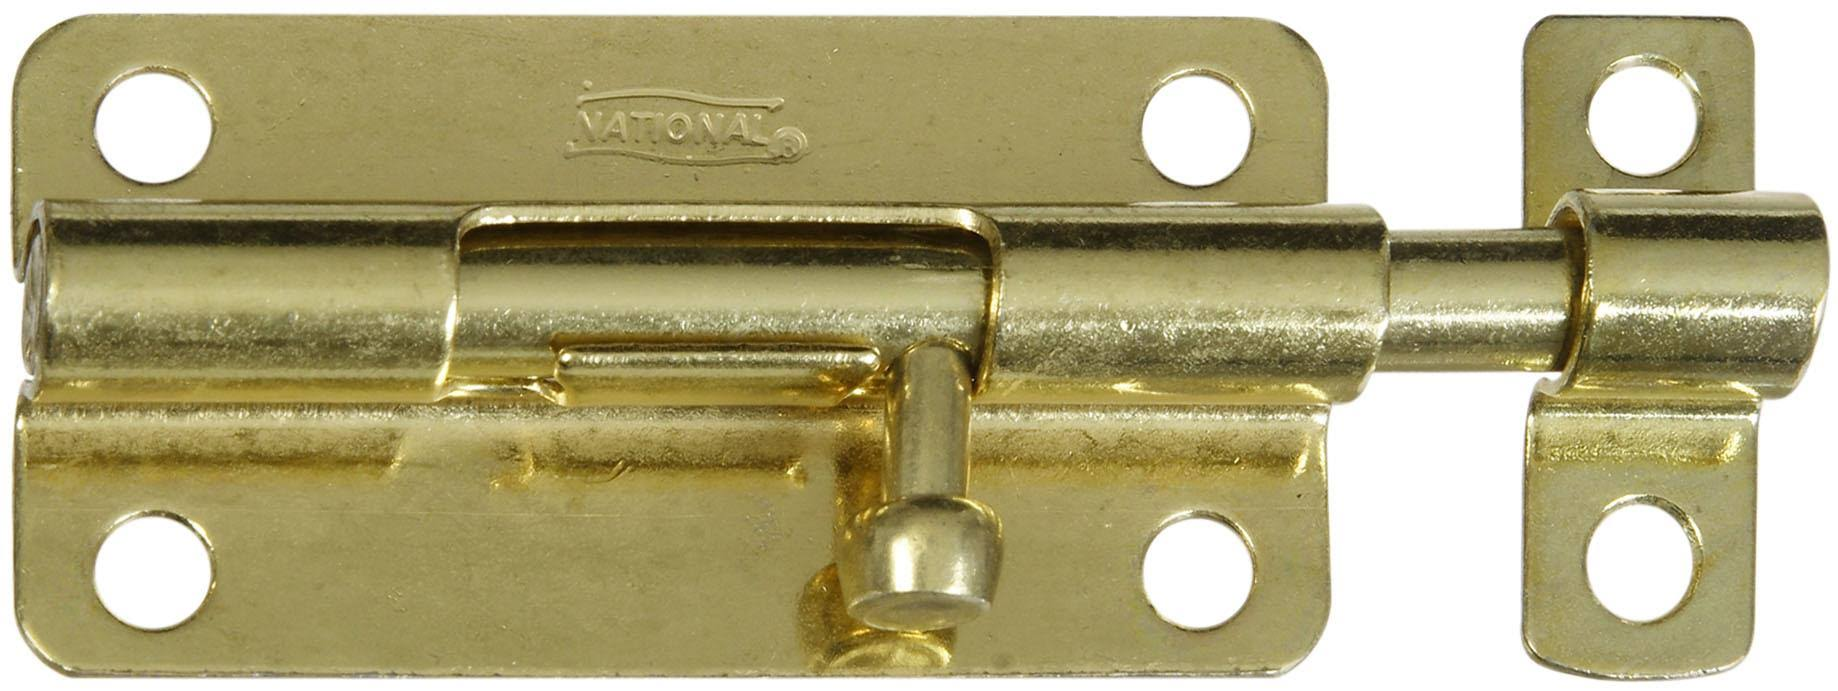 "National Hardware 4"" Brass Barrel Bolt"